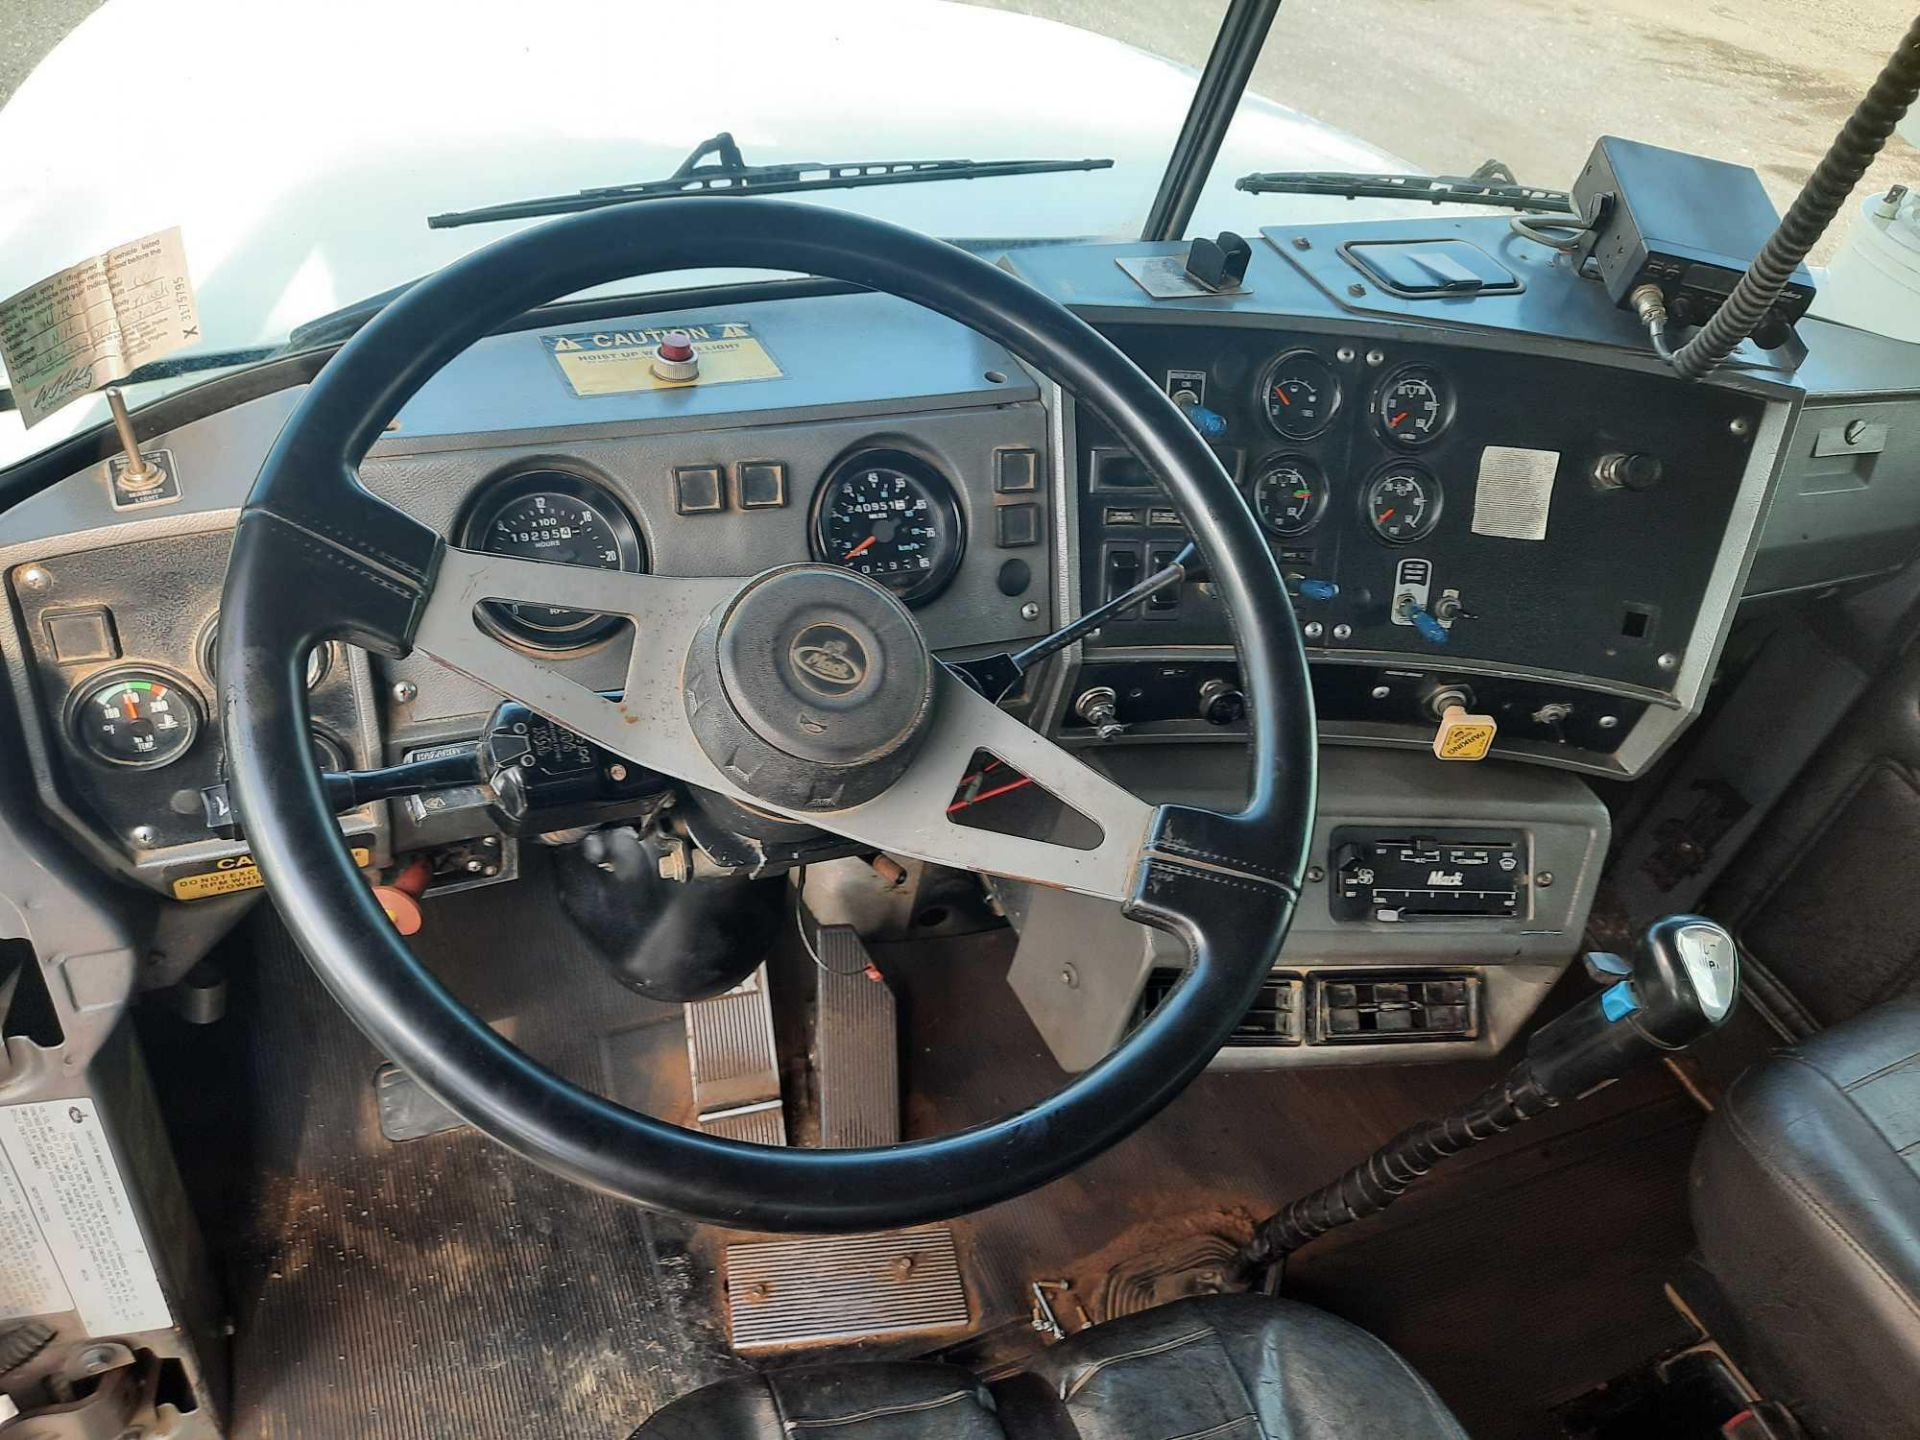 2001 MACK TRI/A ROLL OFF TRUCK - Image 9 of 23